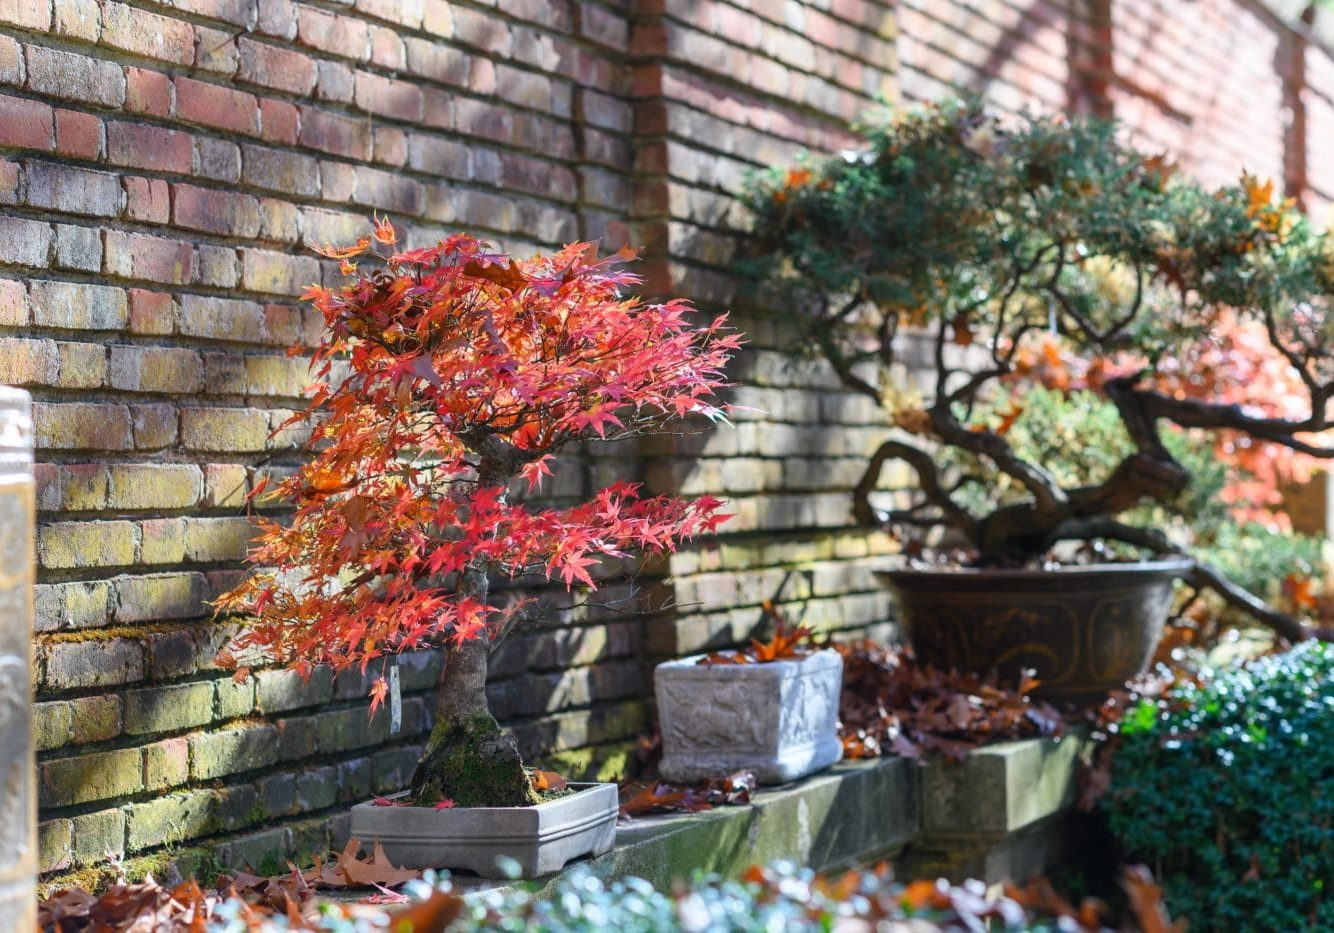 Japanese maple and juniper bonsai at Filoli (photo by Jeff Bartee)